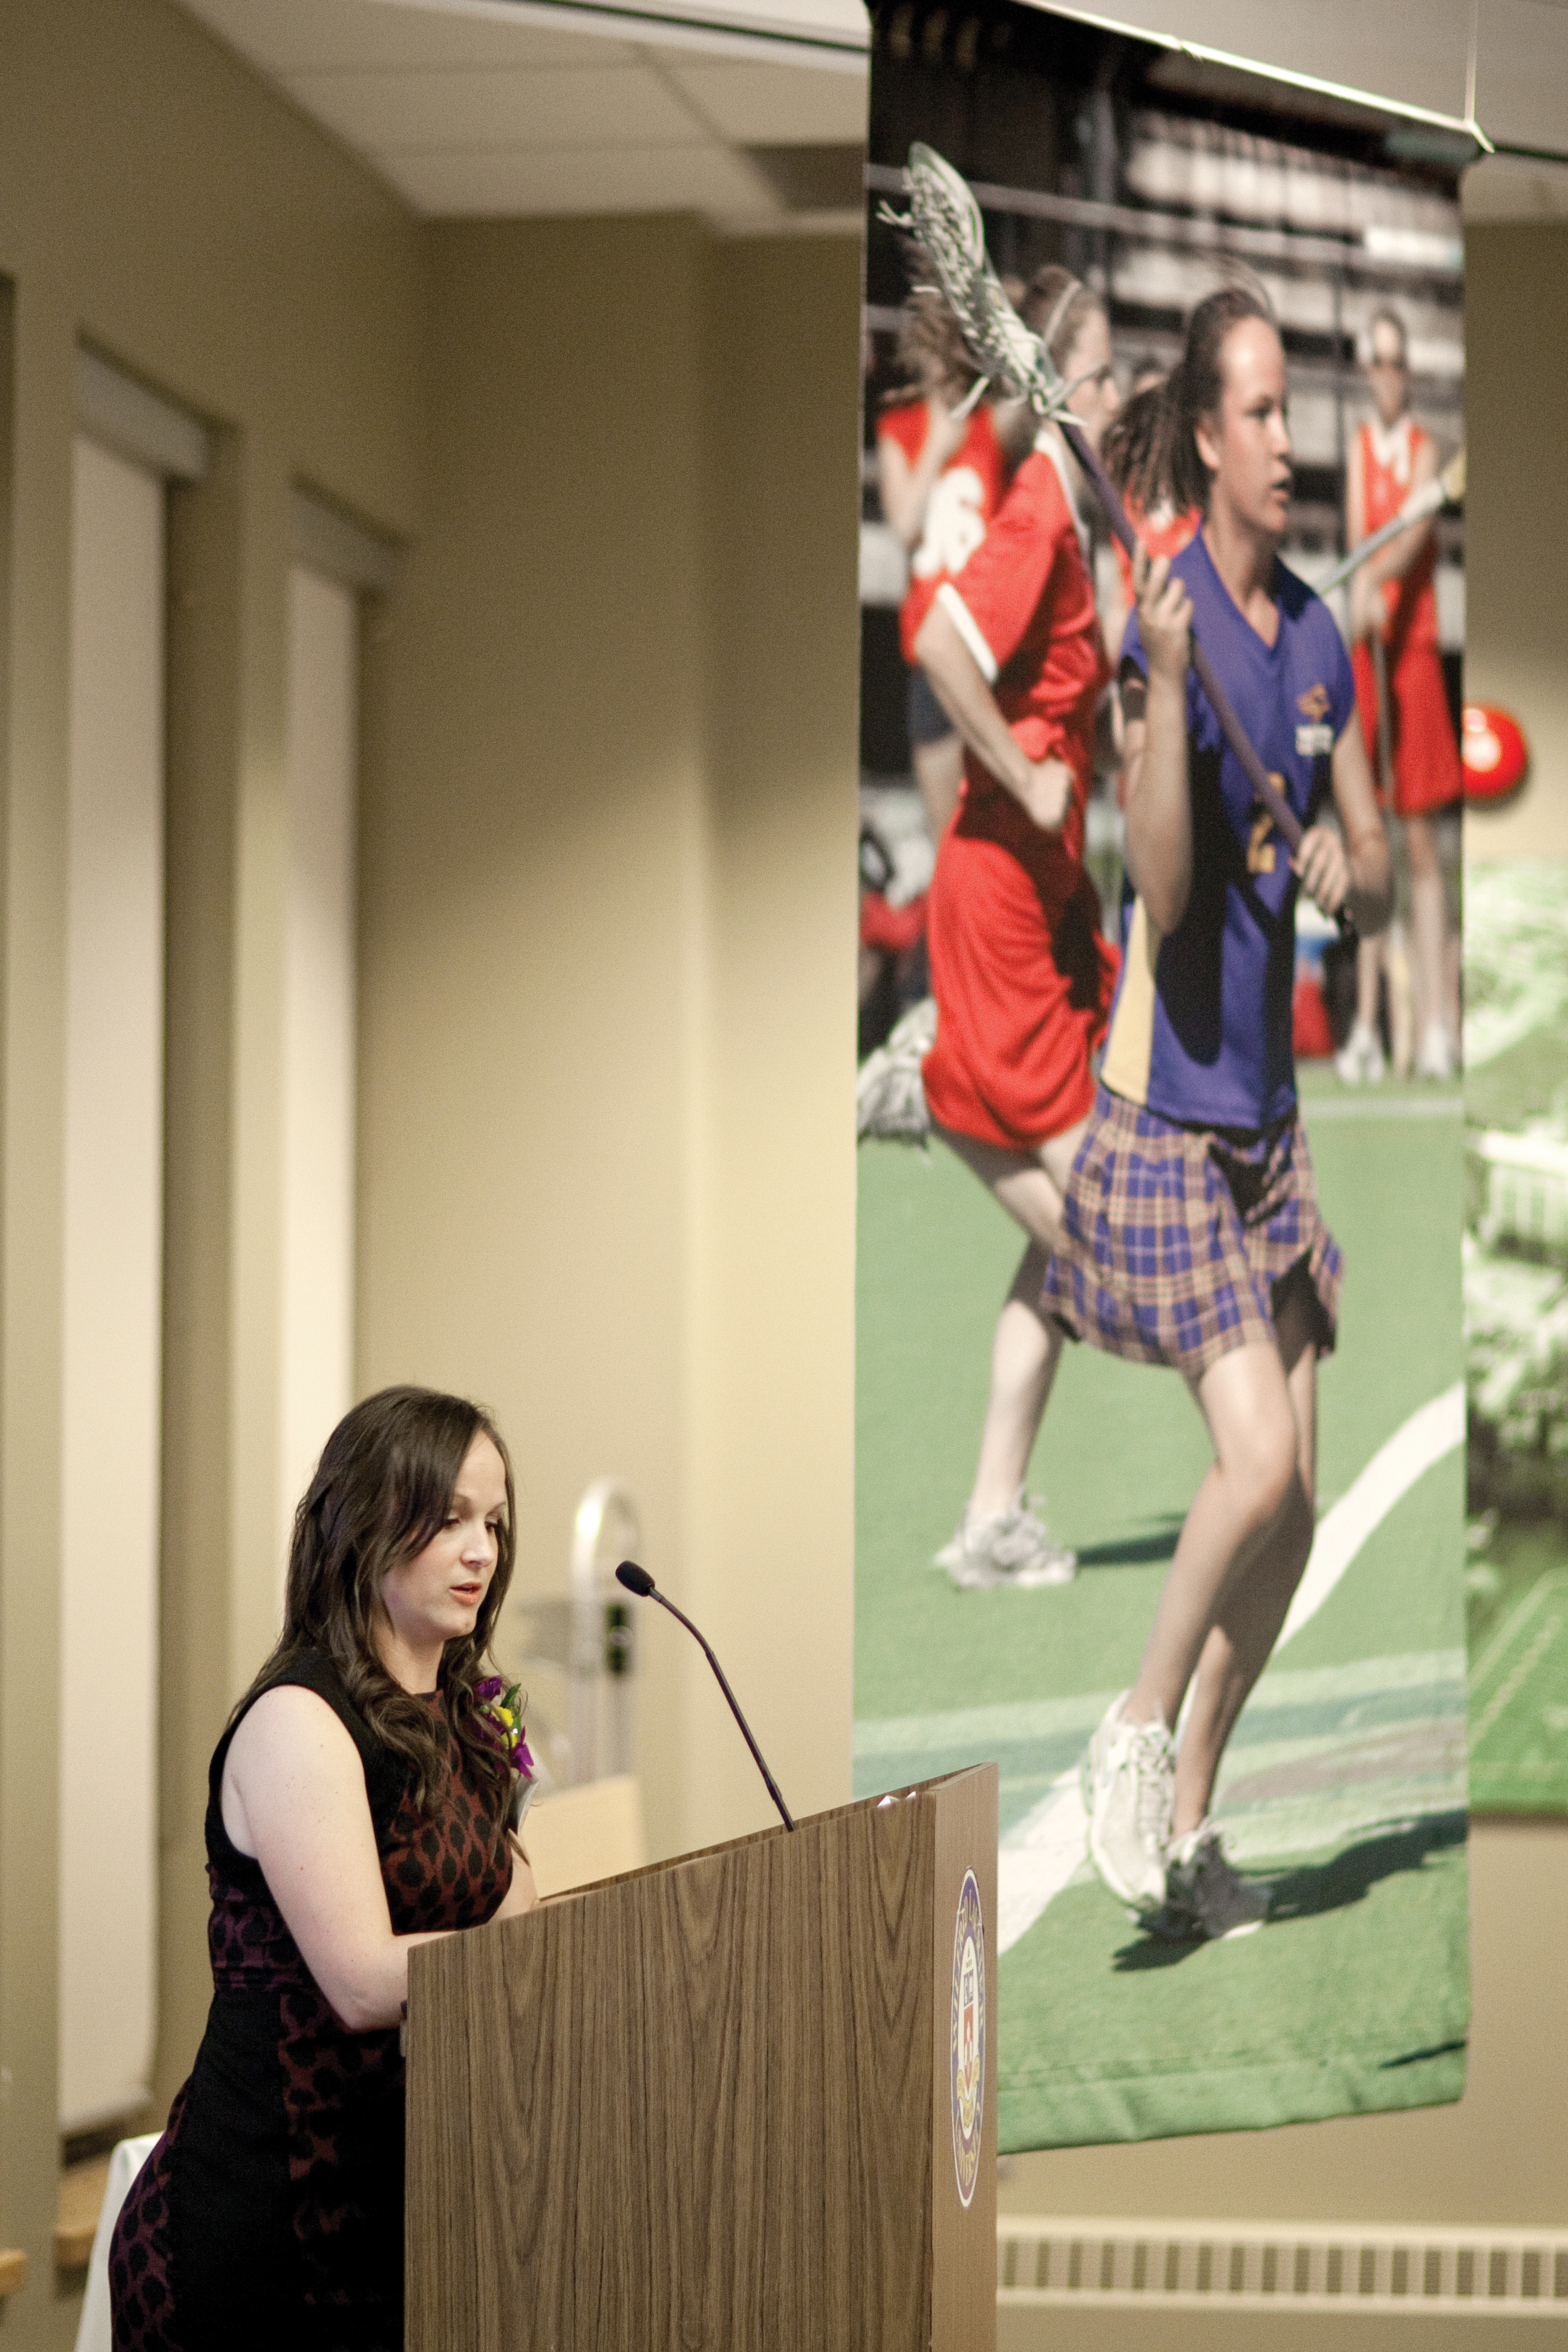 Erica Howard gives her acceptance speech at this year's Hall of Fame induction ceremony. (Photo by Heather Davidson)